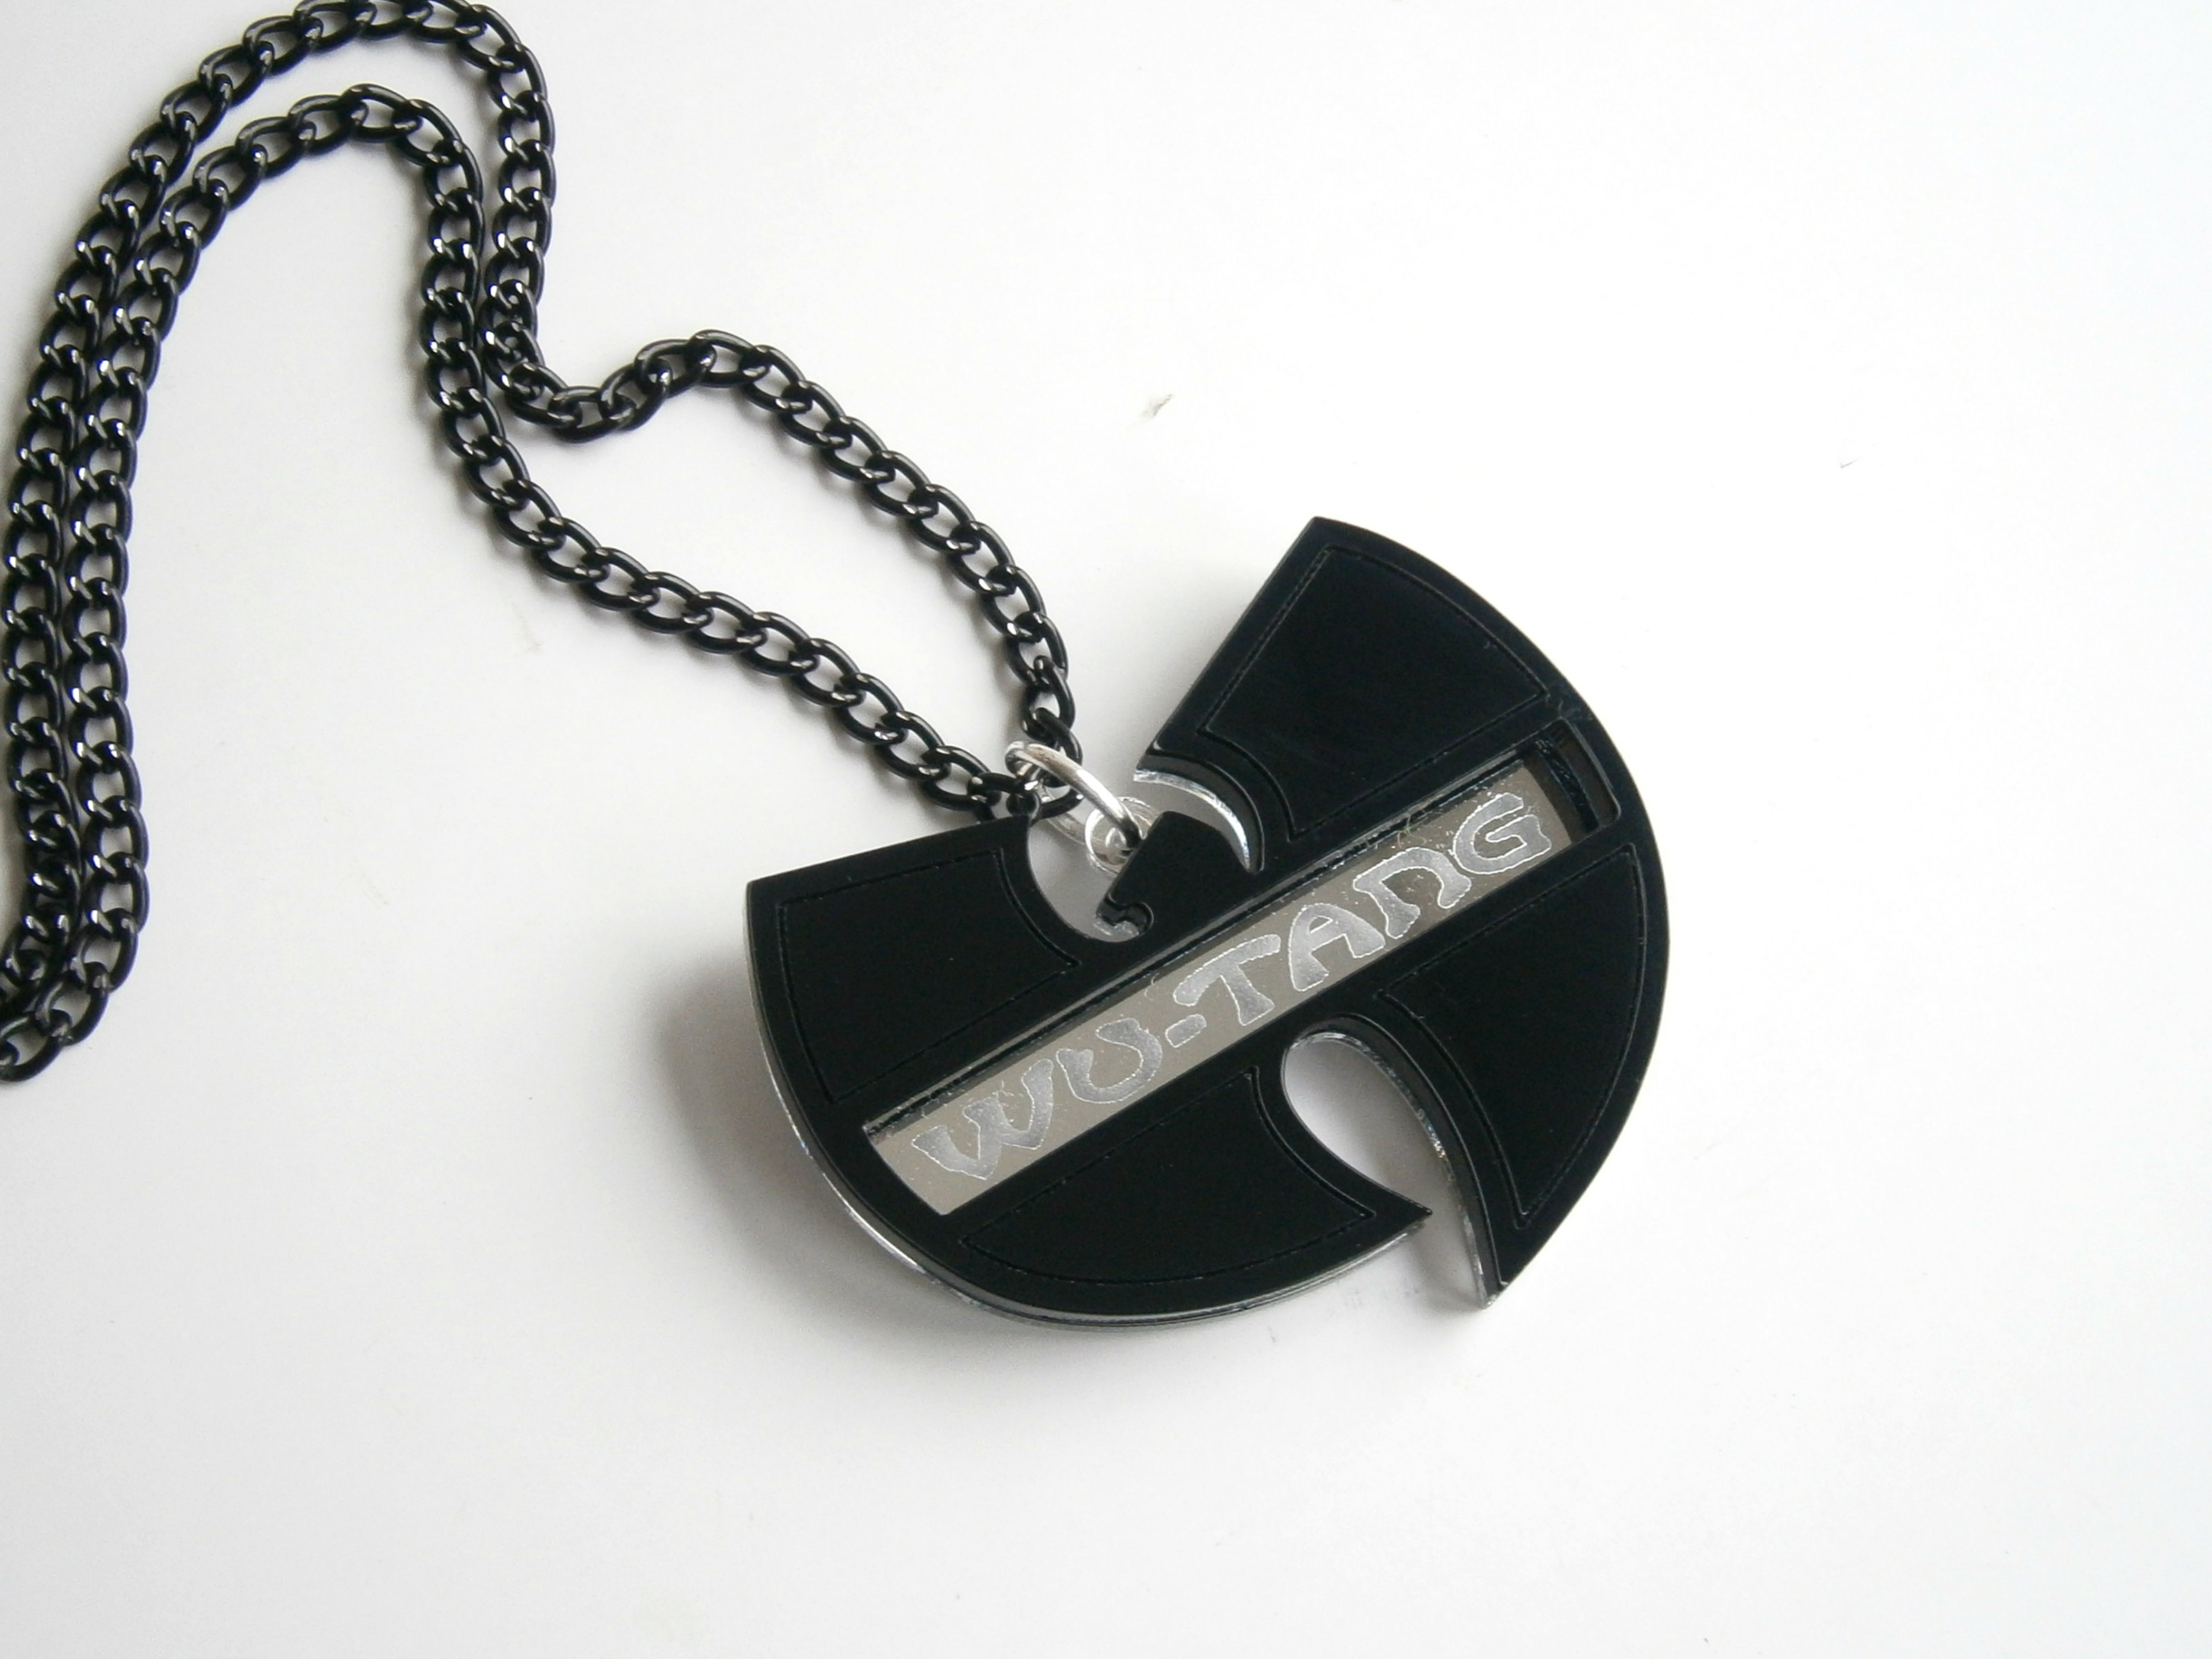 Wu tang necklace laser cut and engraved hip hop pendant aloadofball